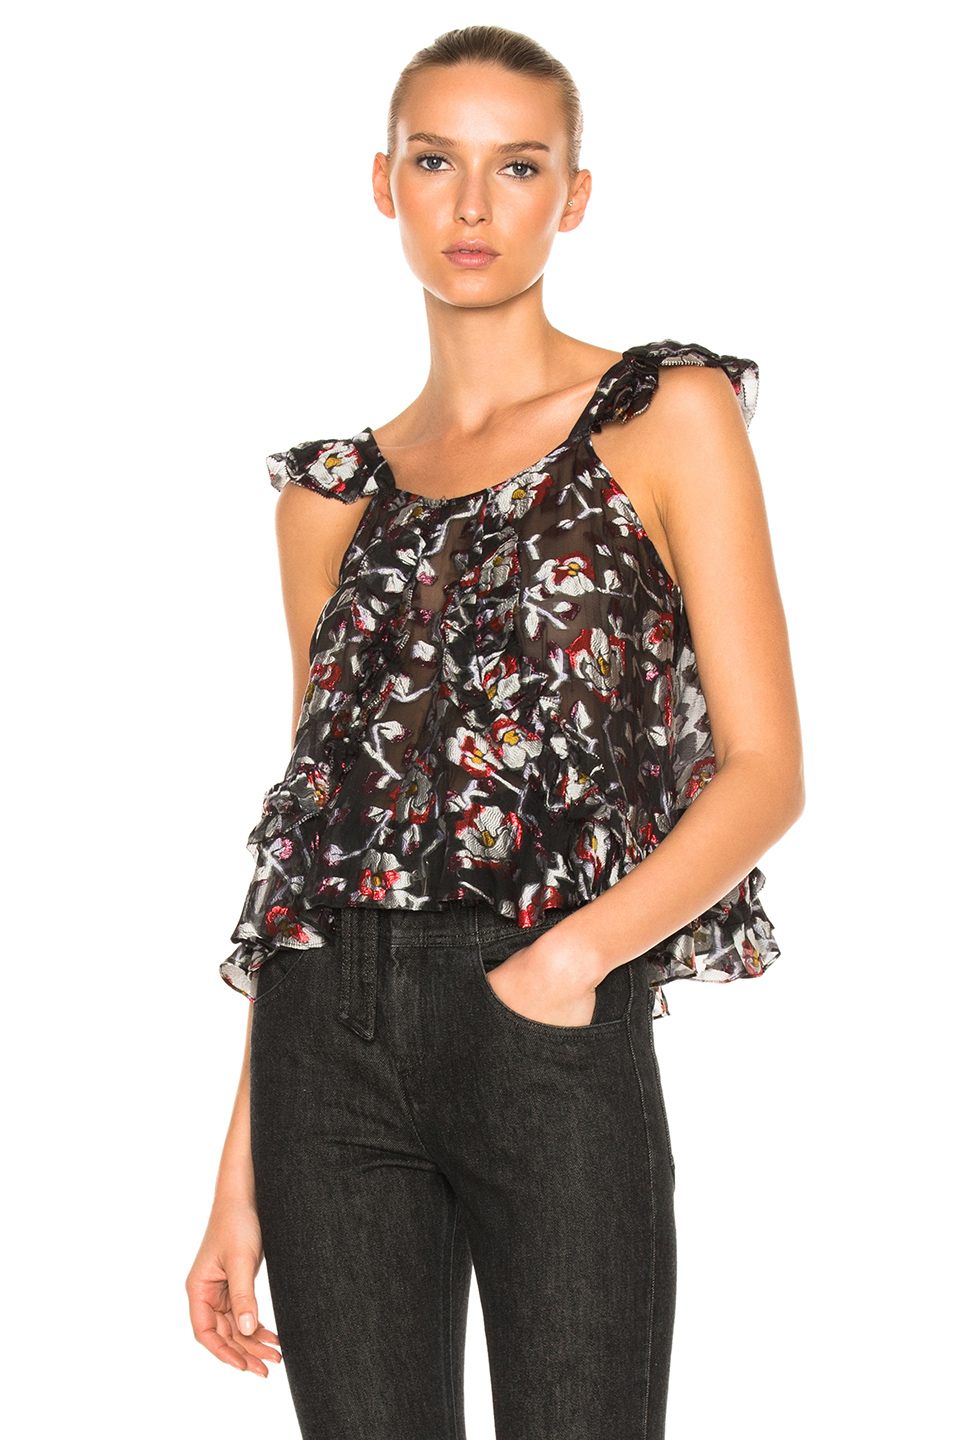 Isabel Marant Piety Top in Black,Floral,Gray,Purple,Red